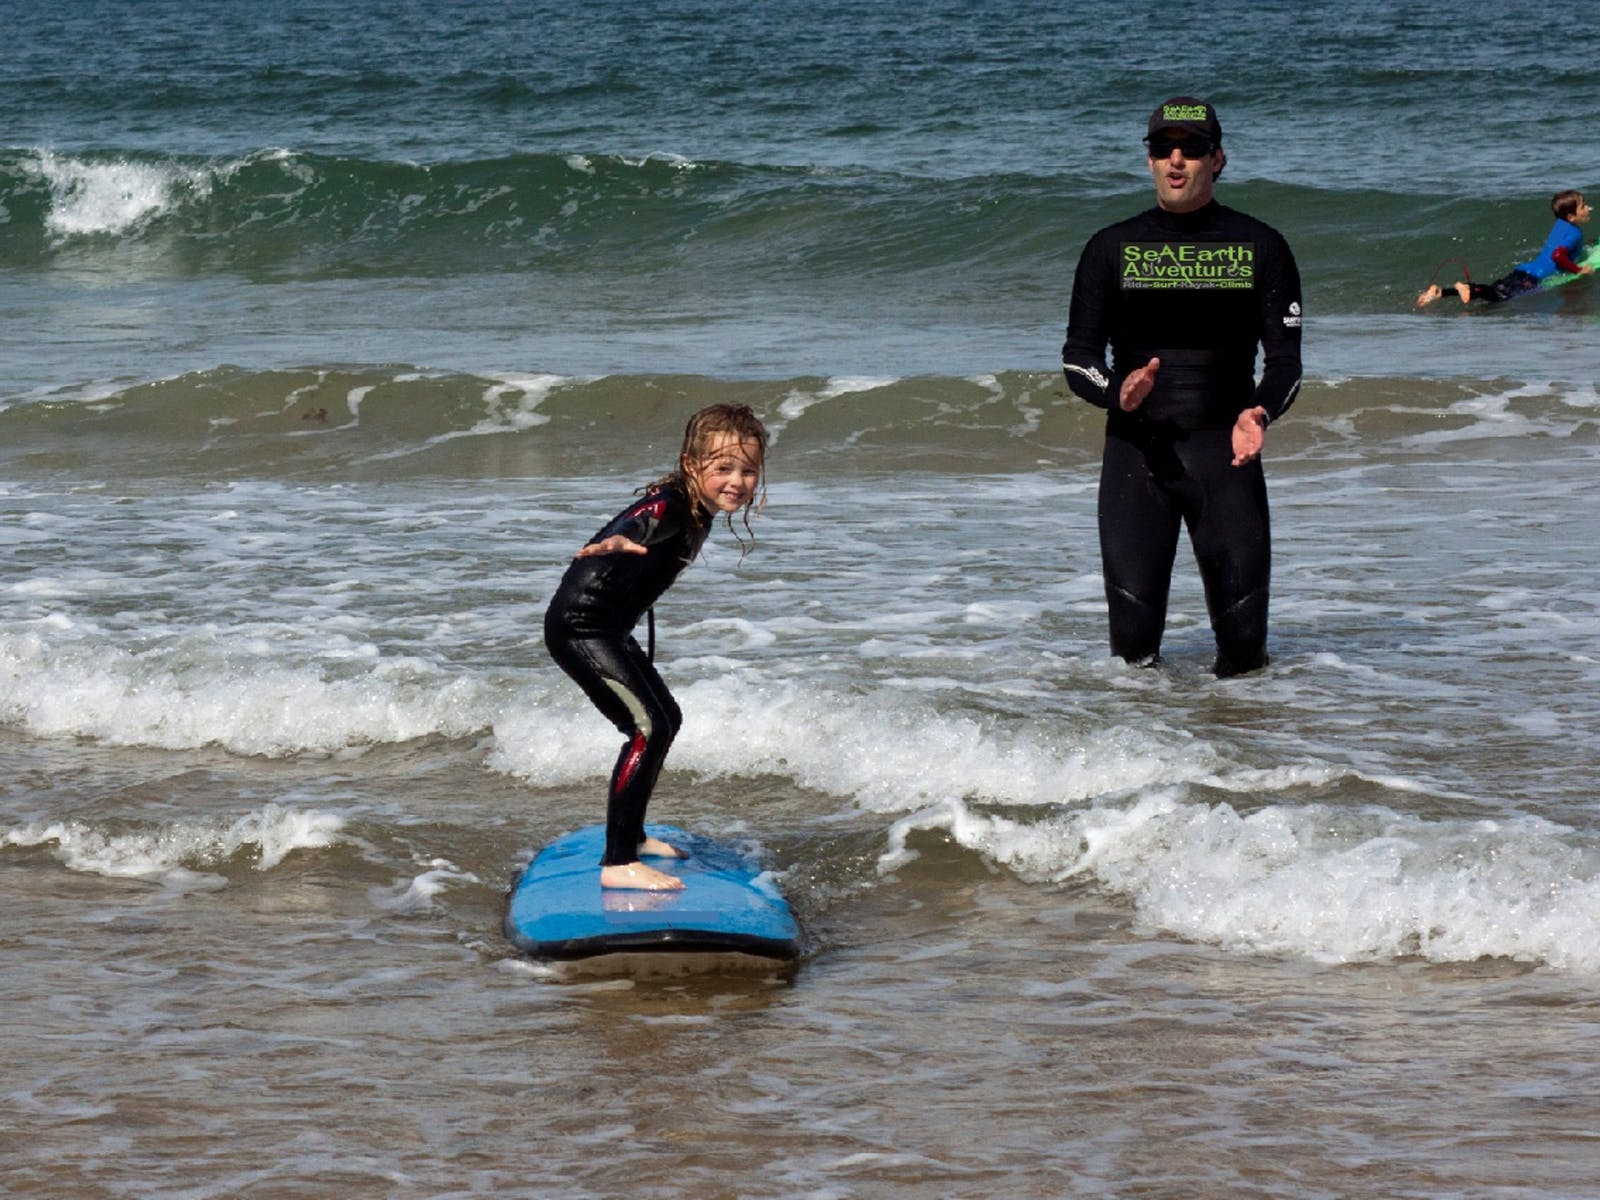 Girl surfing at Torquay